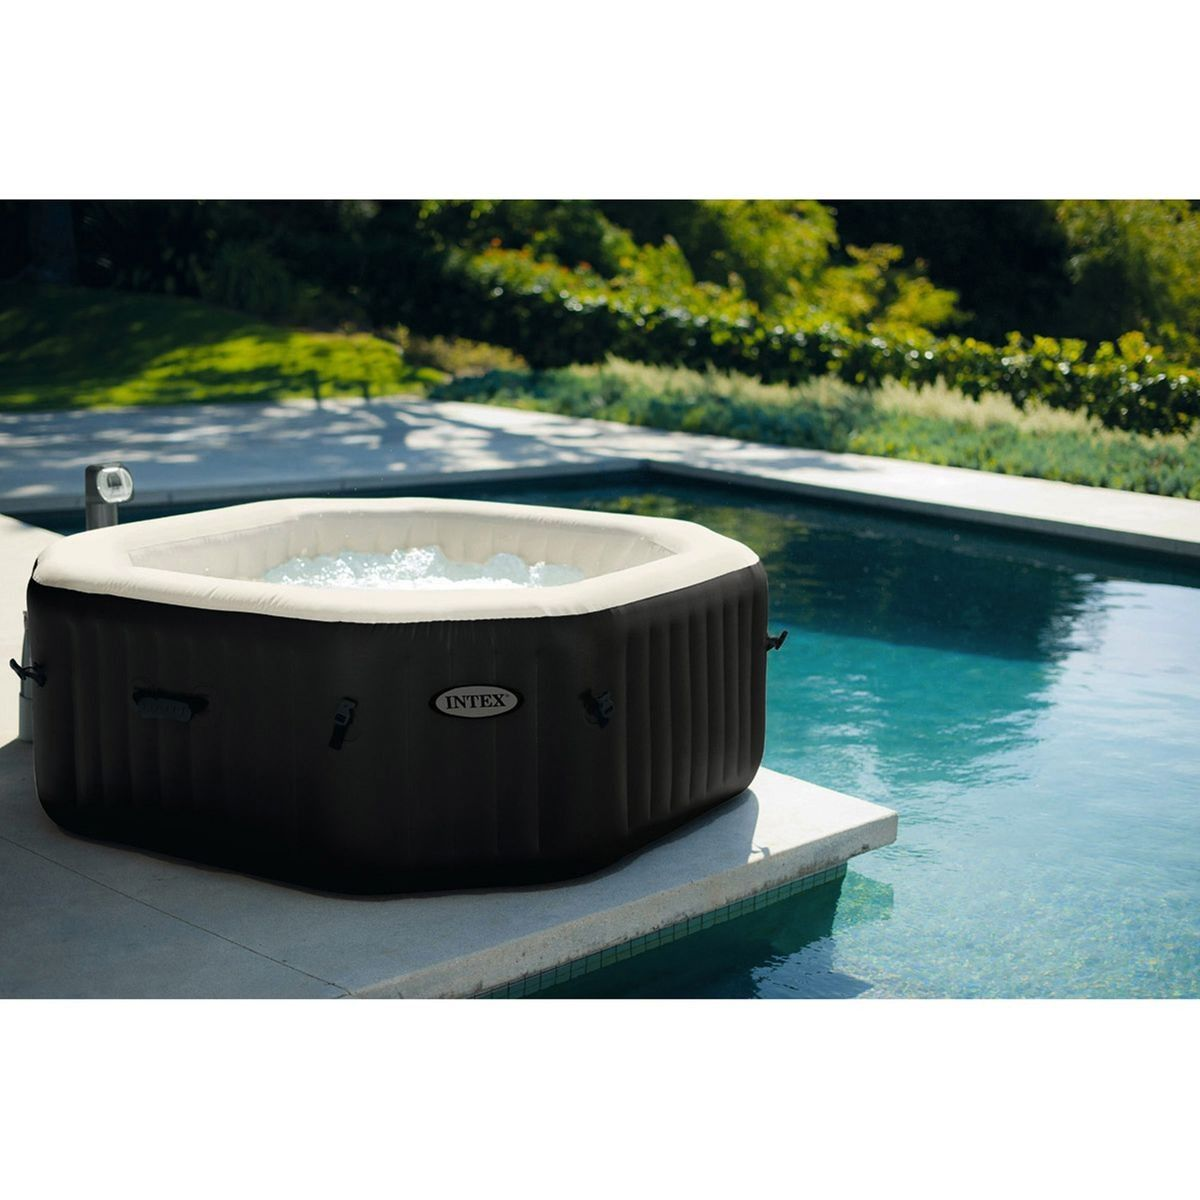 Spa Gonflable Octogonal 4 Places Taille Taille Unique Spa Gonflable Intex Spa Gonflable Spa Gonflable 6 Places